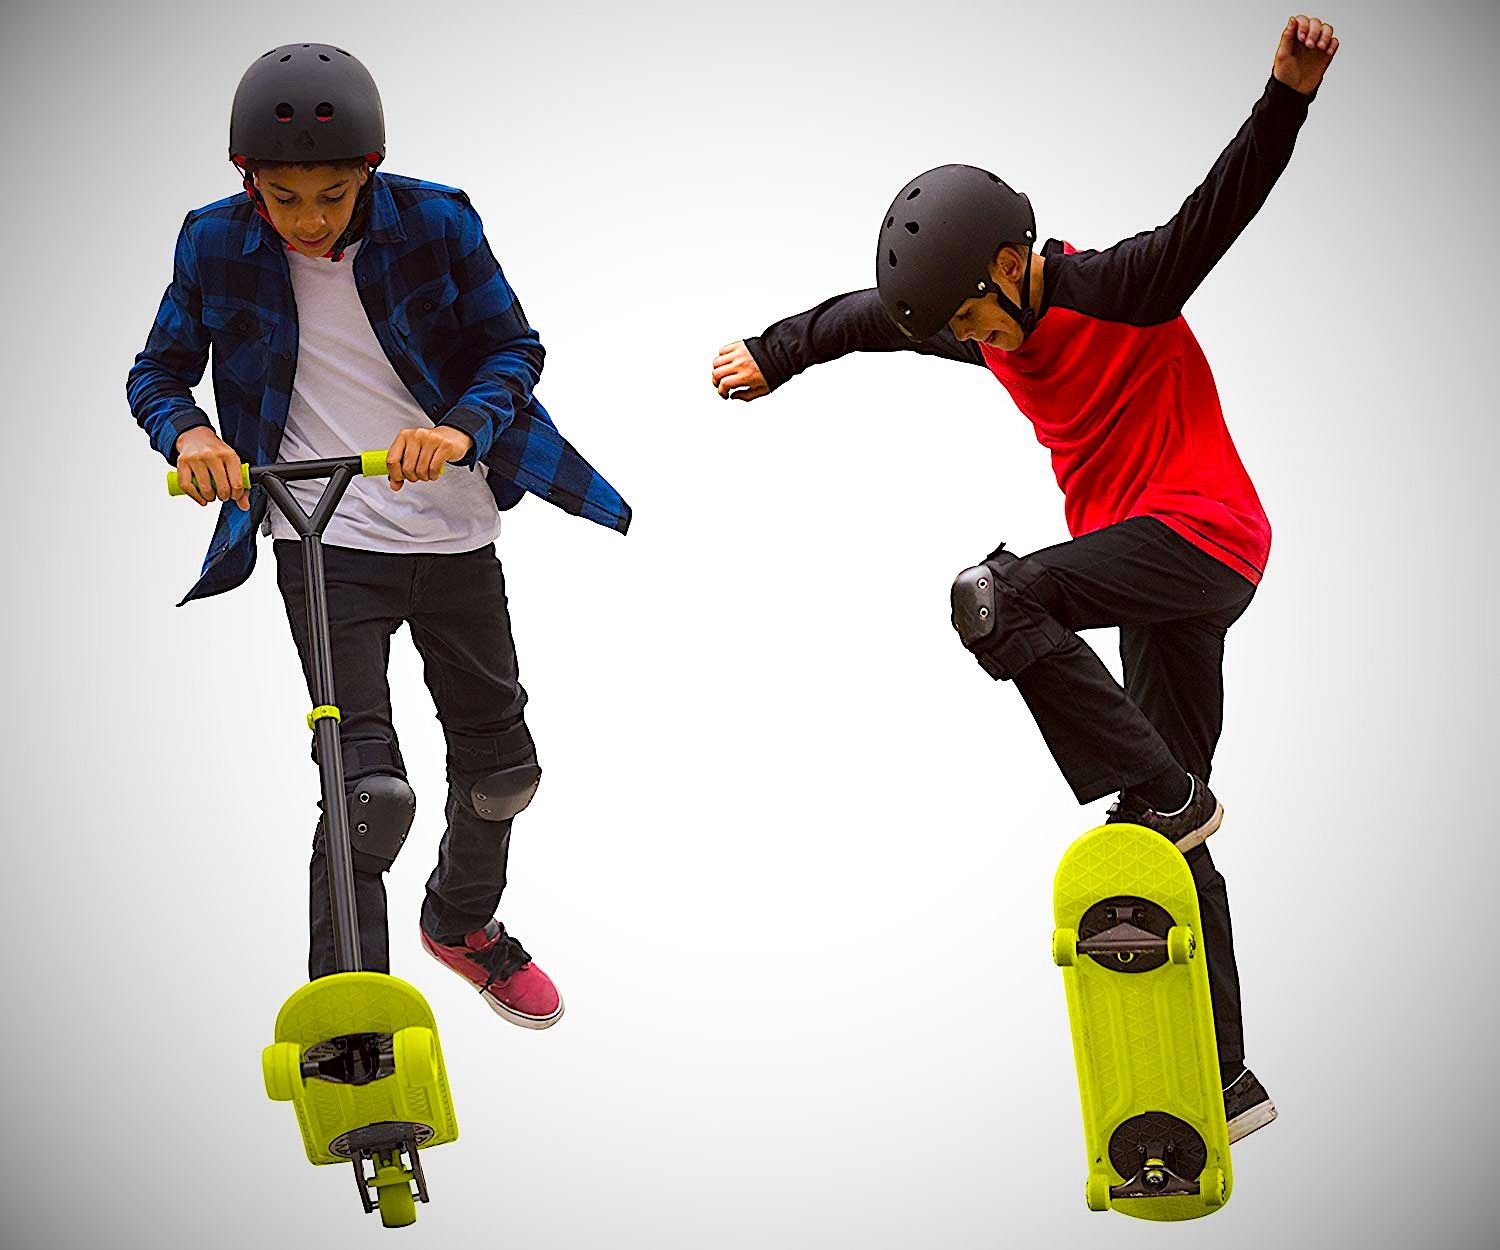 Kids playing the scooter and skateboard morfboard